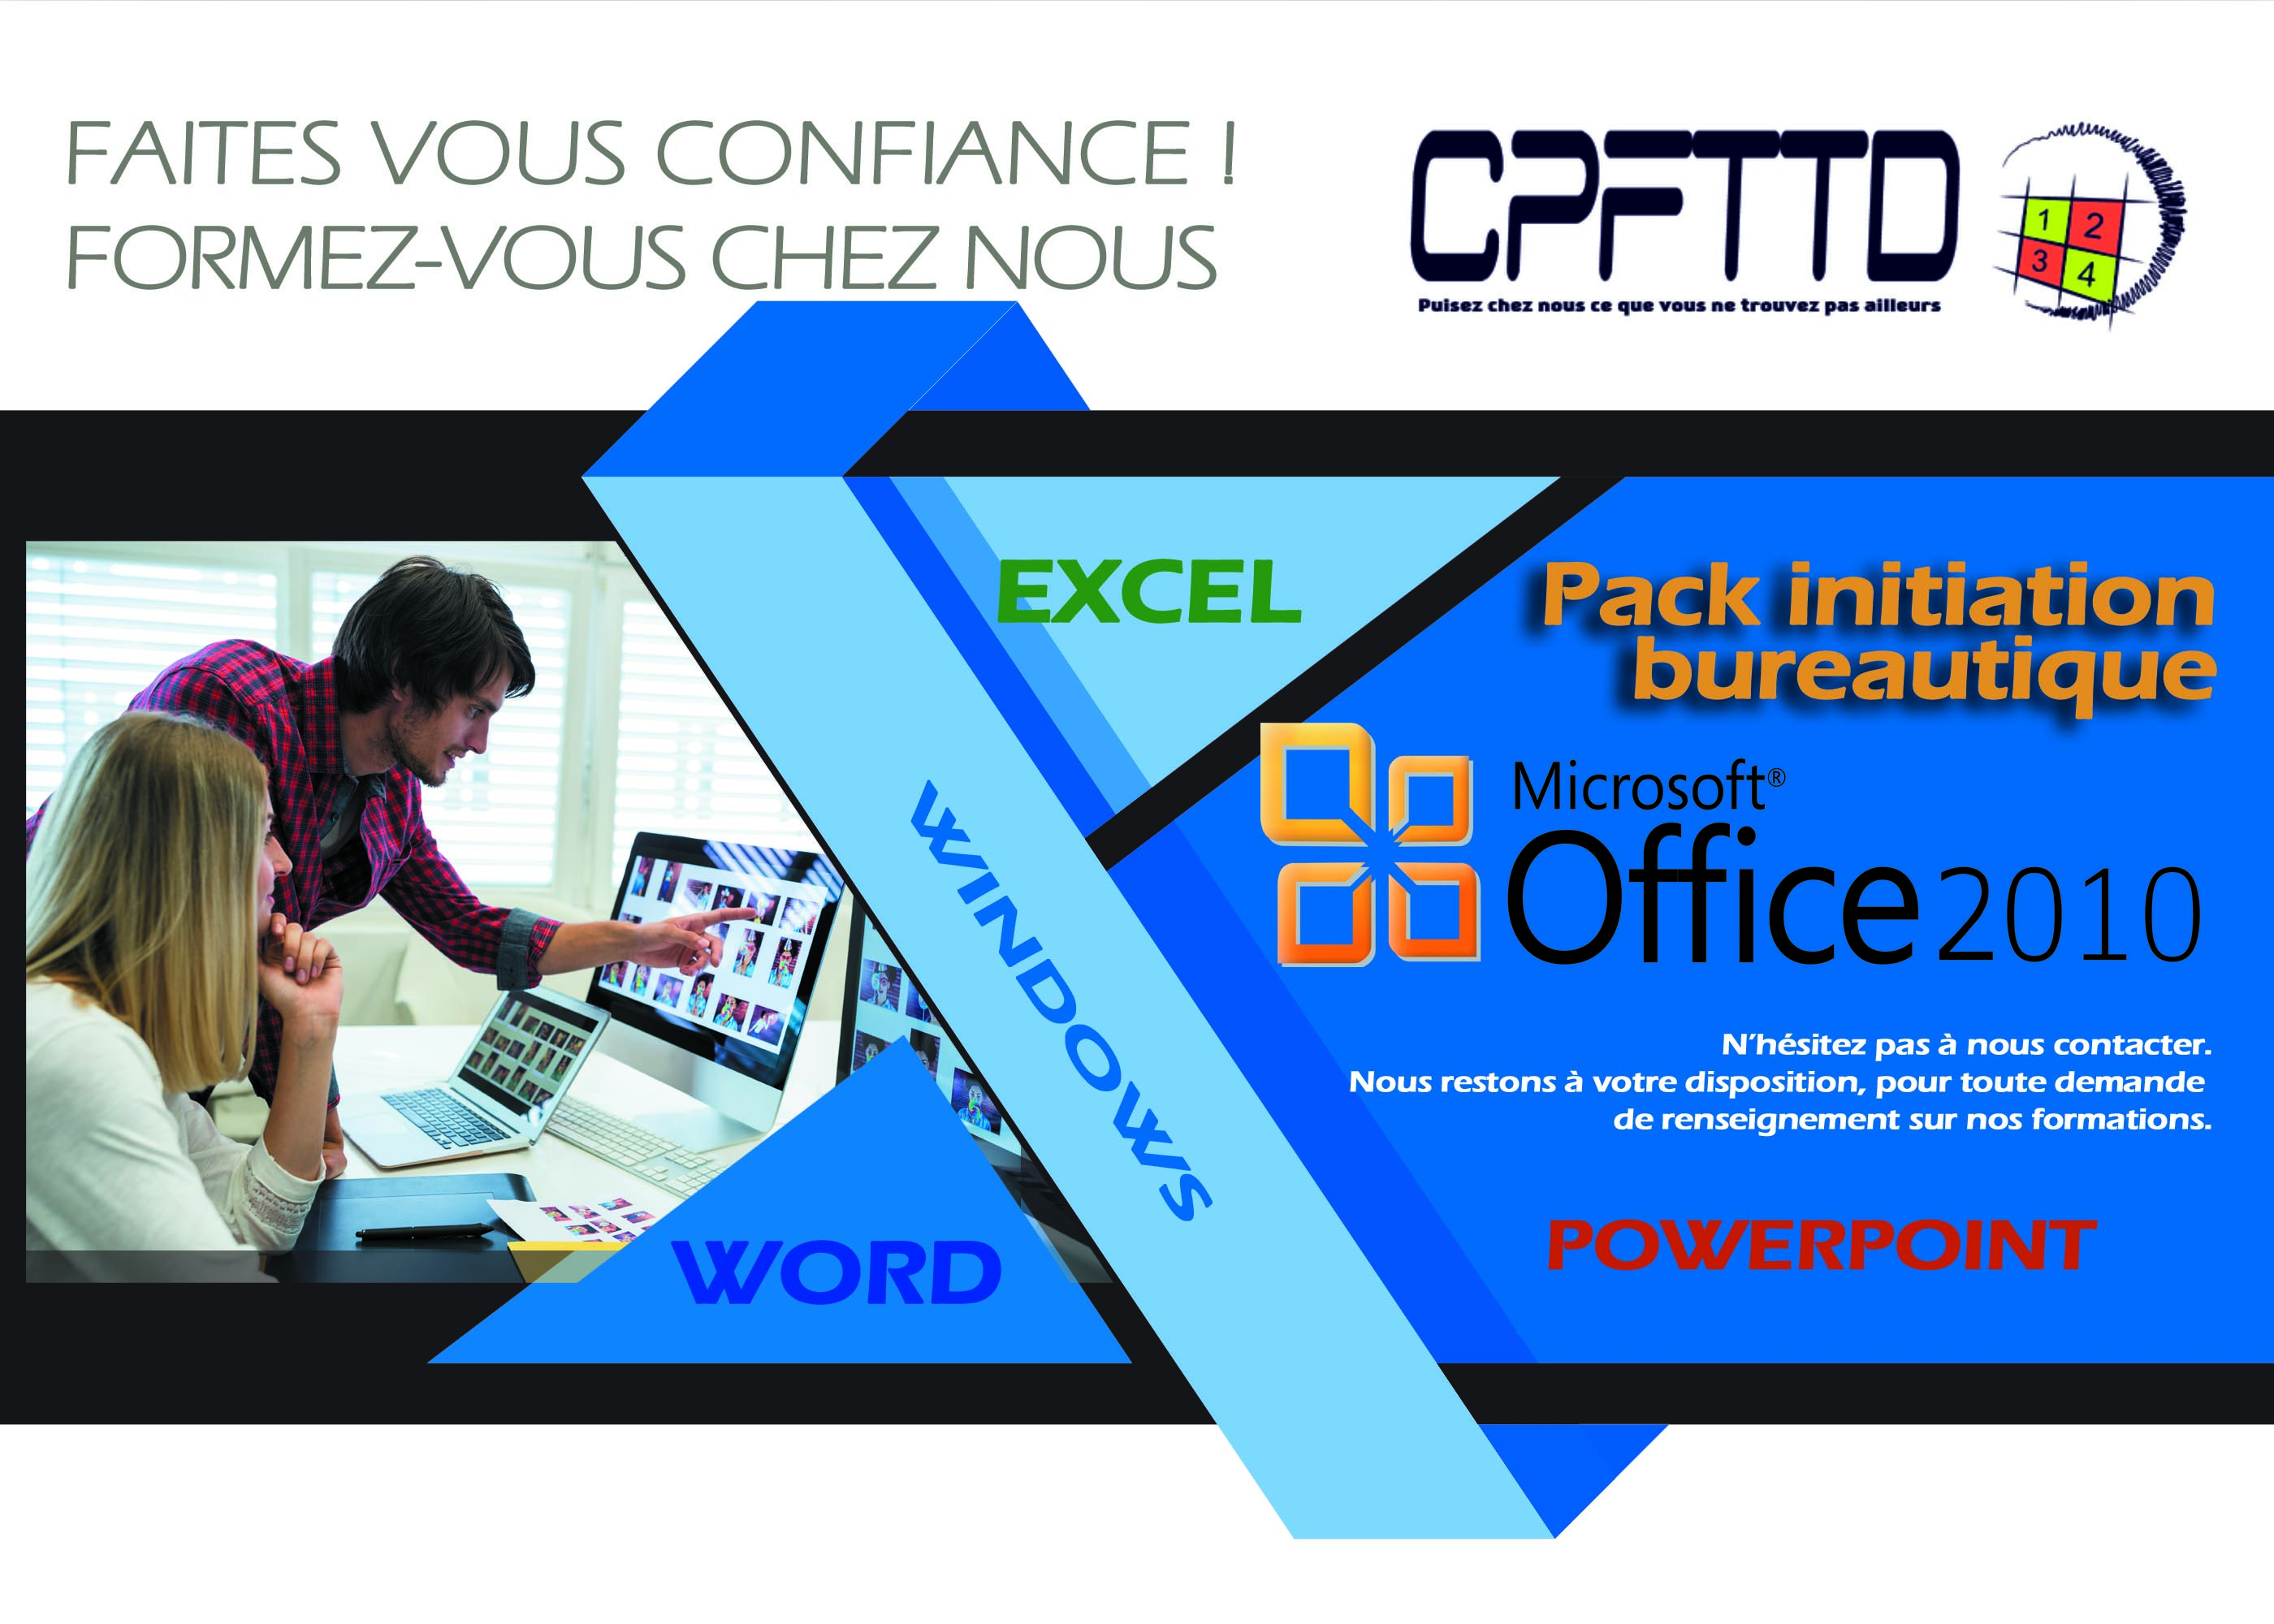 Formation Ms Office 2010, powerpoint, excel, word,2010